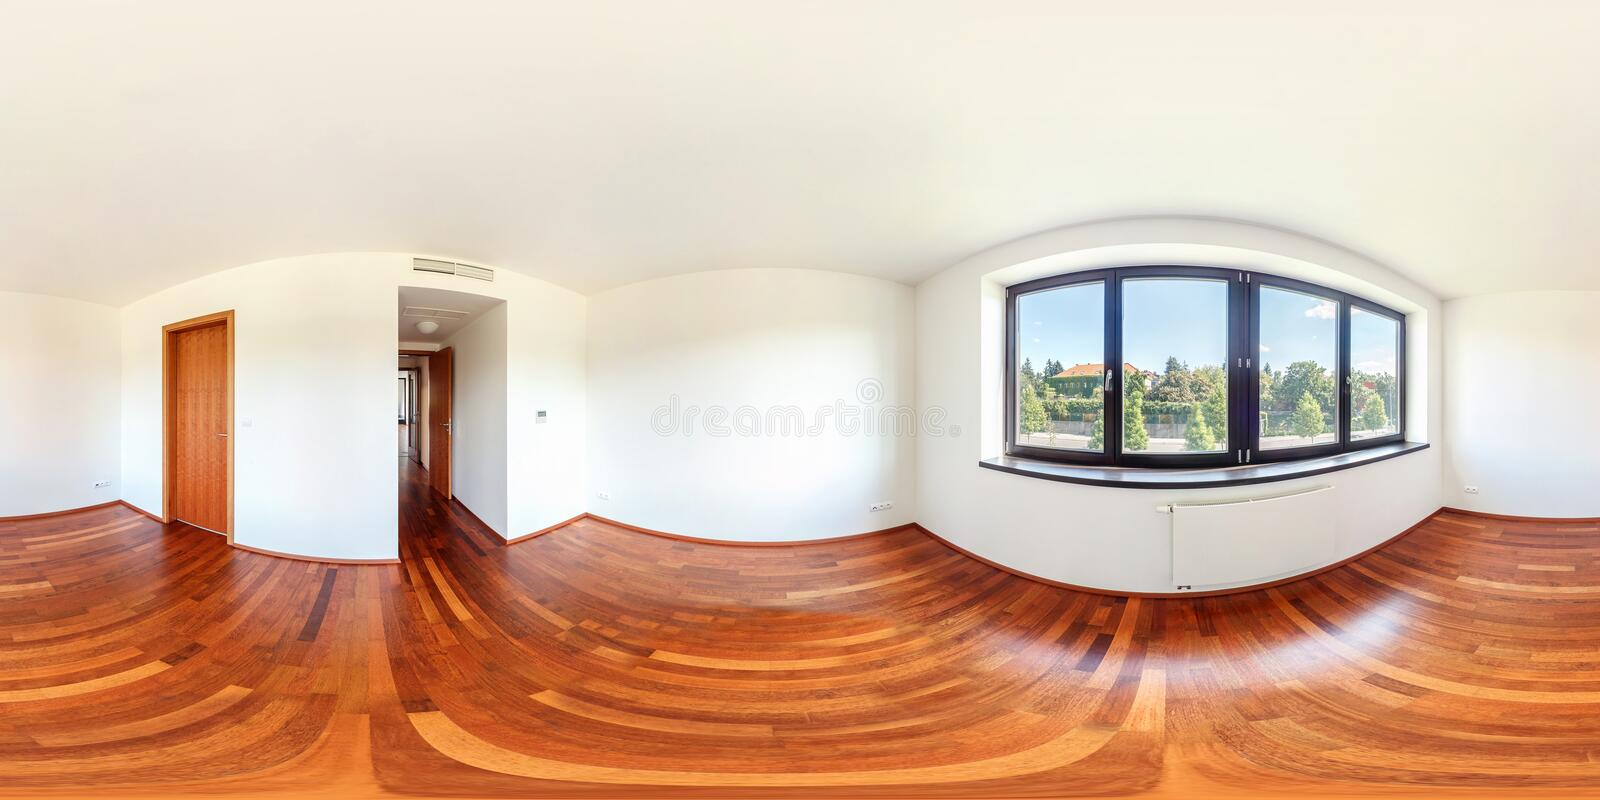 PRAGA, CHECH - AUGUST 5, 2013: Full spherical 360 by 180 degrees seamless panorama in equirectangular equidistant projection,. Panorama in interior empty room stock photos